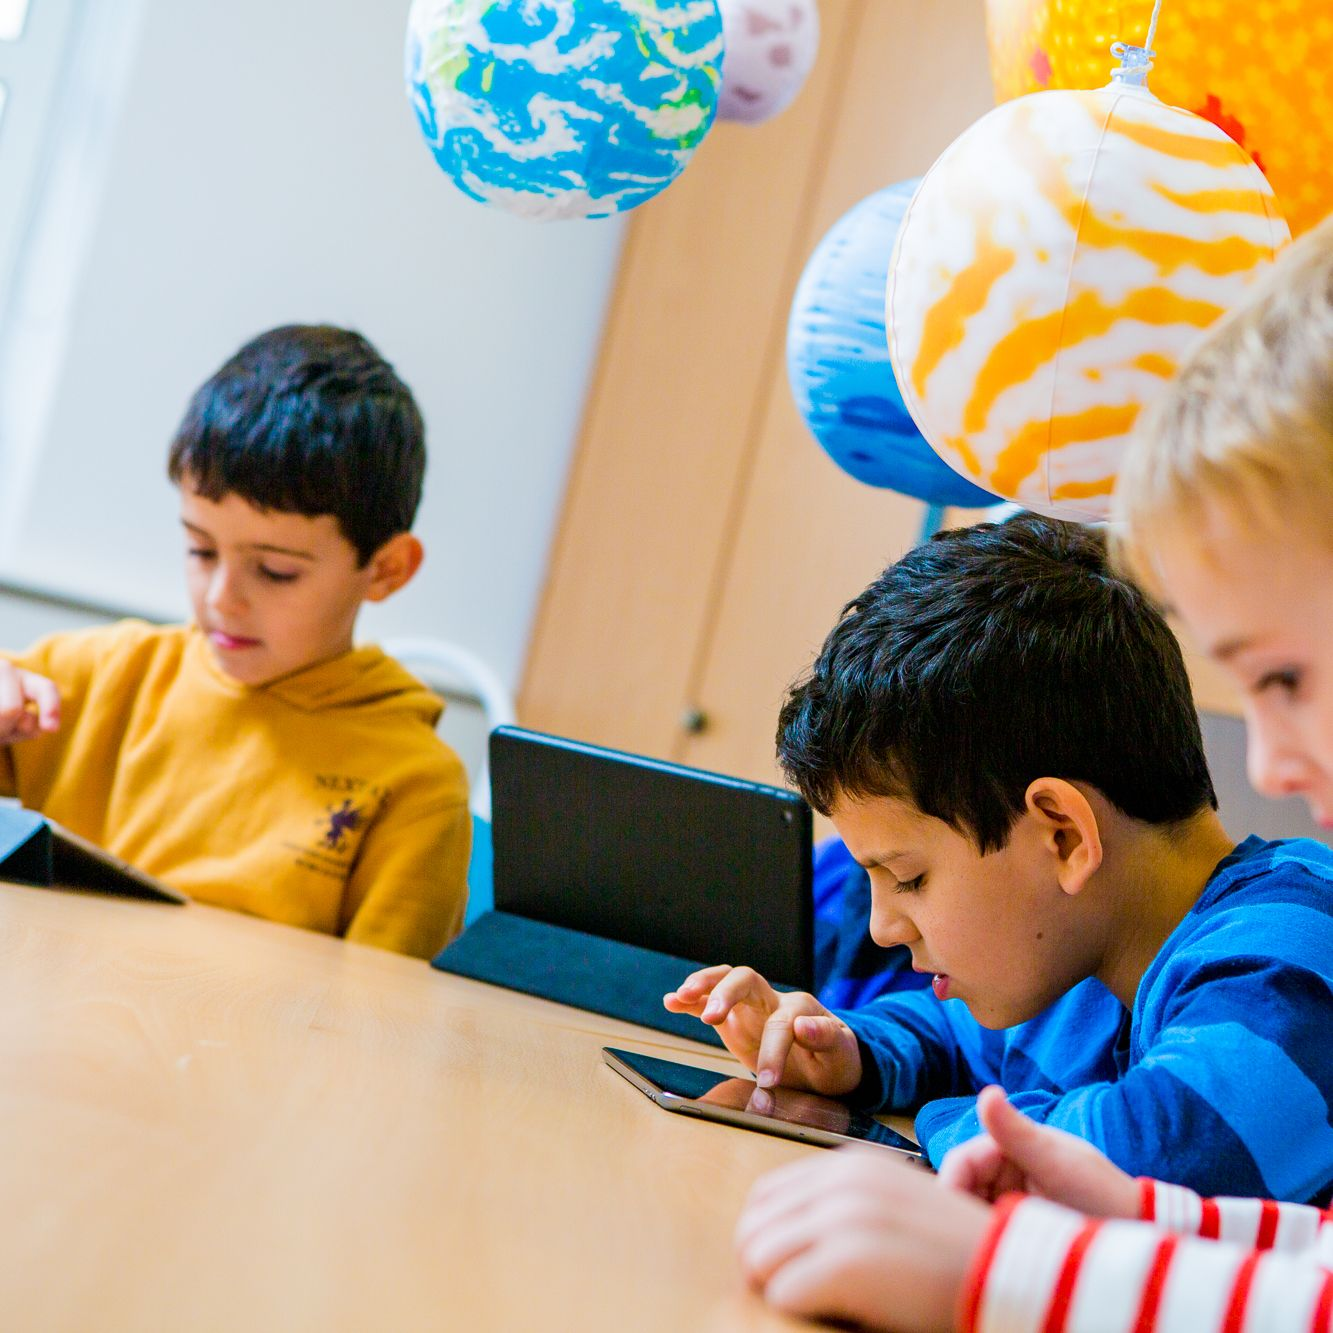 5 Top Tips for Teaching Remotely